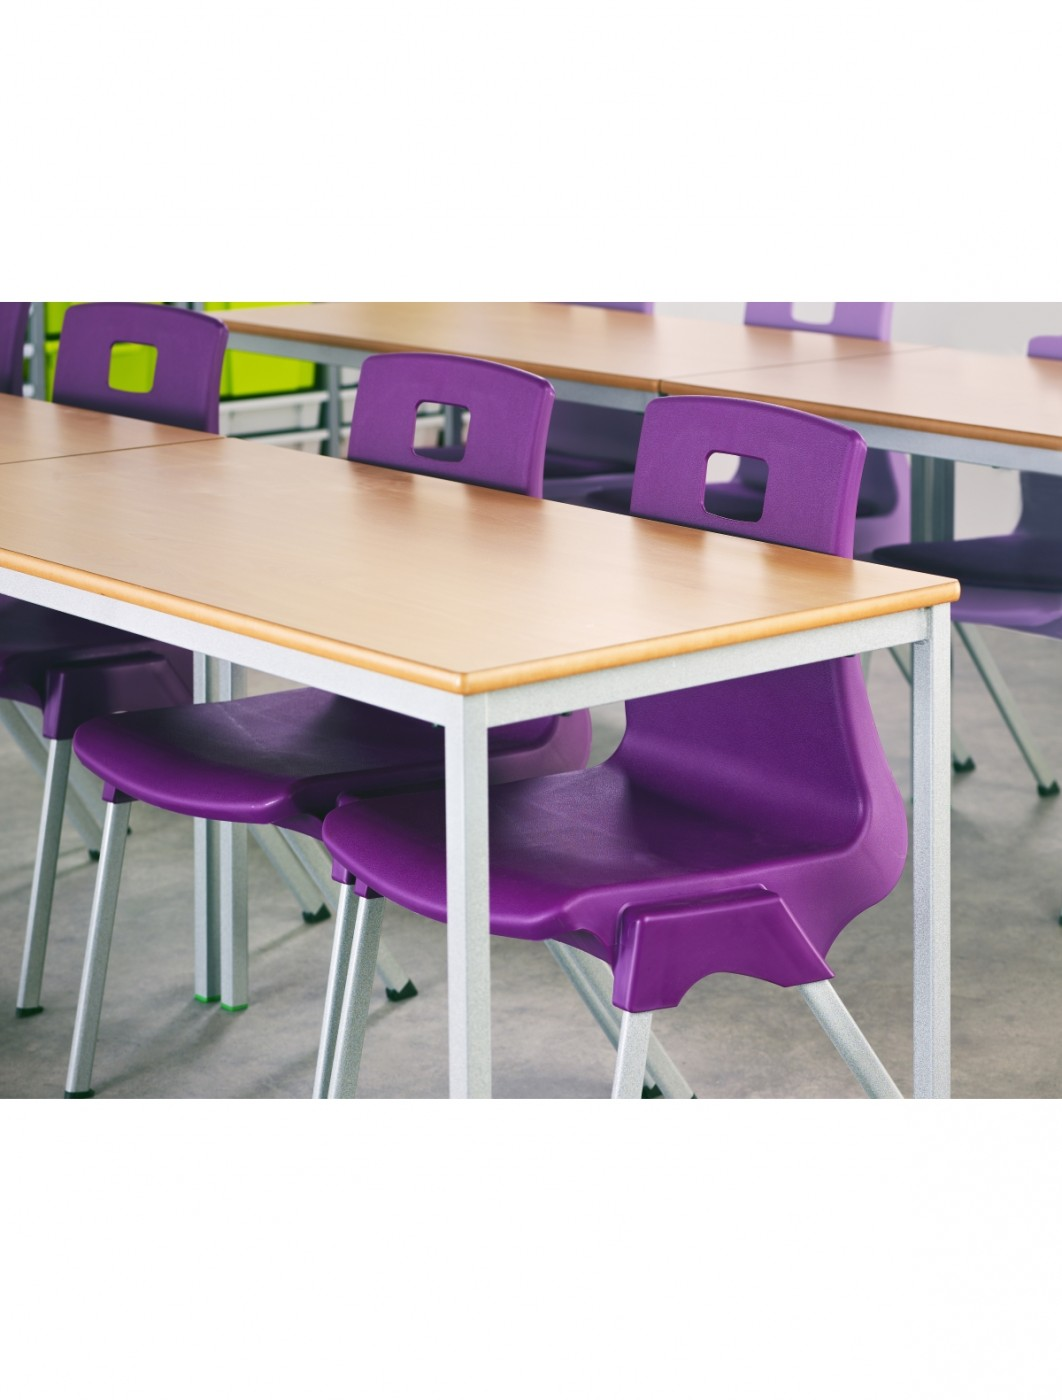 Classroom Tables - 1500x750mm Rectangular Stacking Tables SQSS-157-MD - Fully Welded